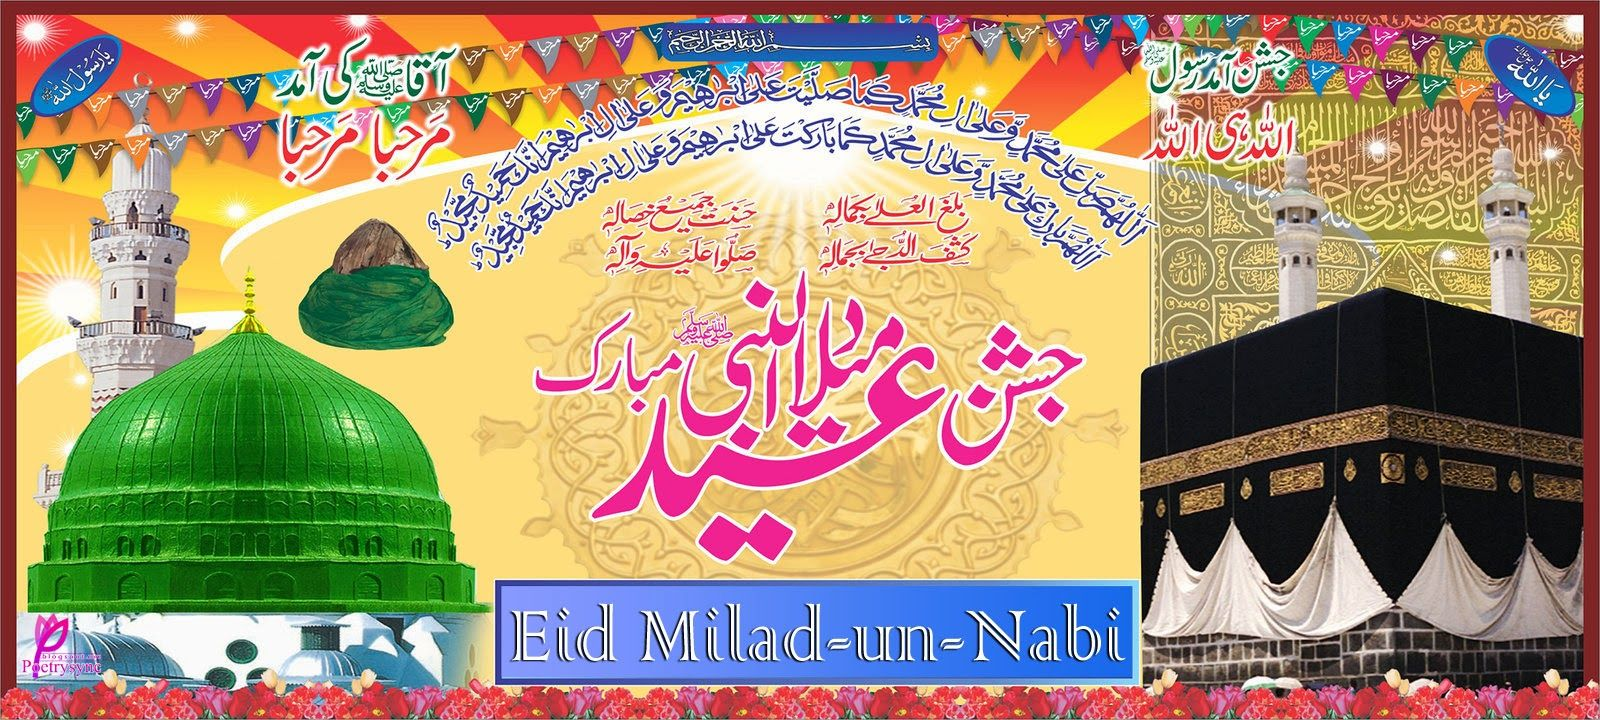 Eid Milad Ul Nabi Wishes Picture Wallpaper Bennar Eid Milad Eid Milad Un Nabi Wallpaper